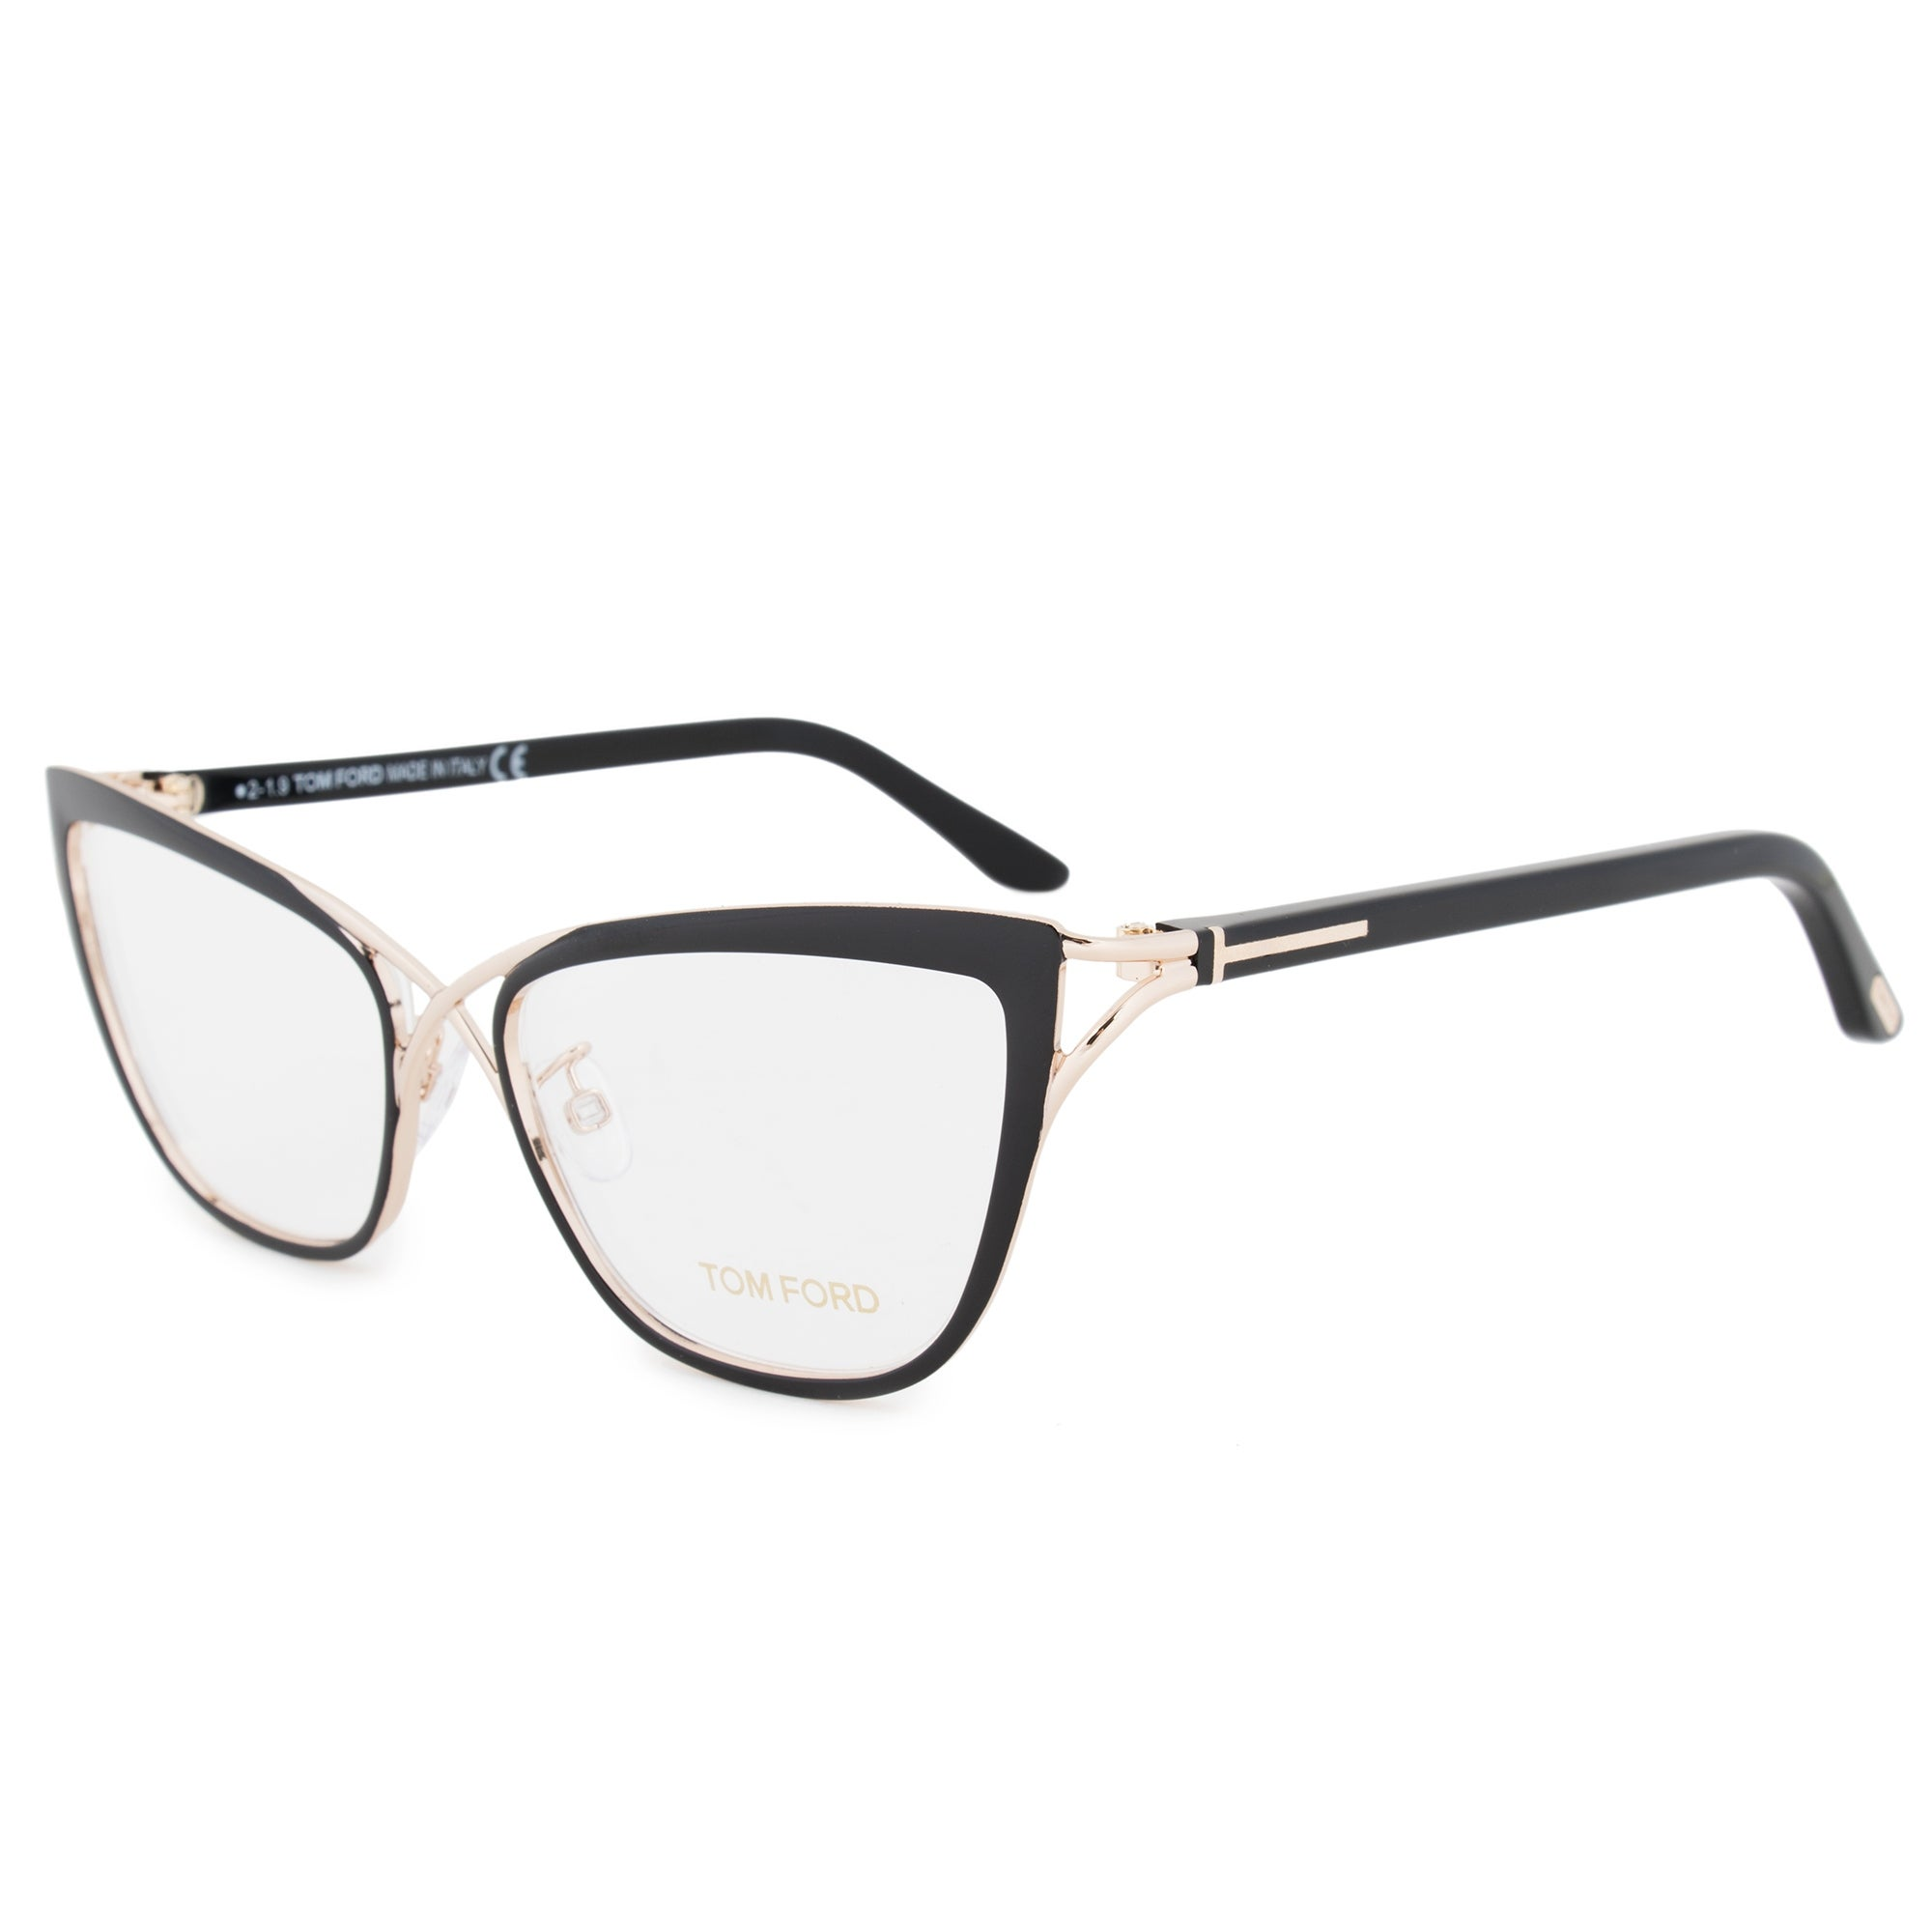 0944dc559750 Tom Ford Eyeglasses